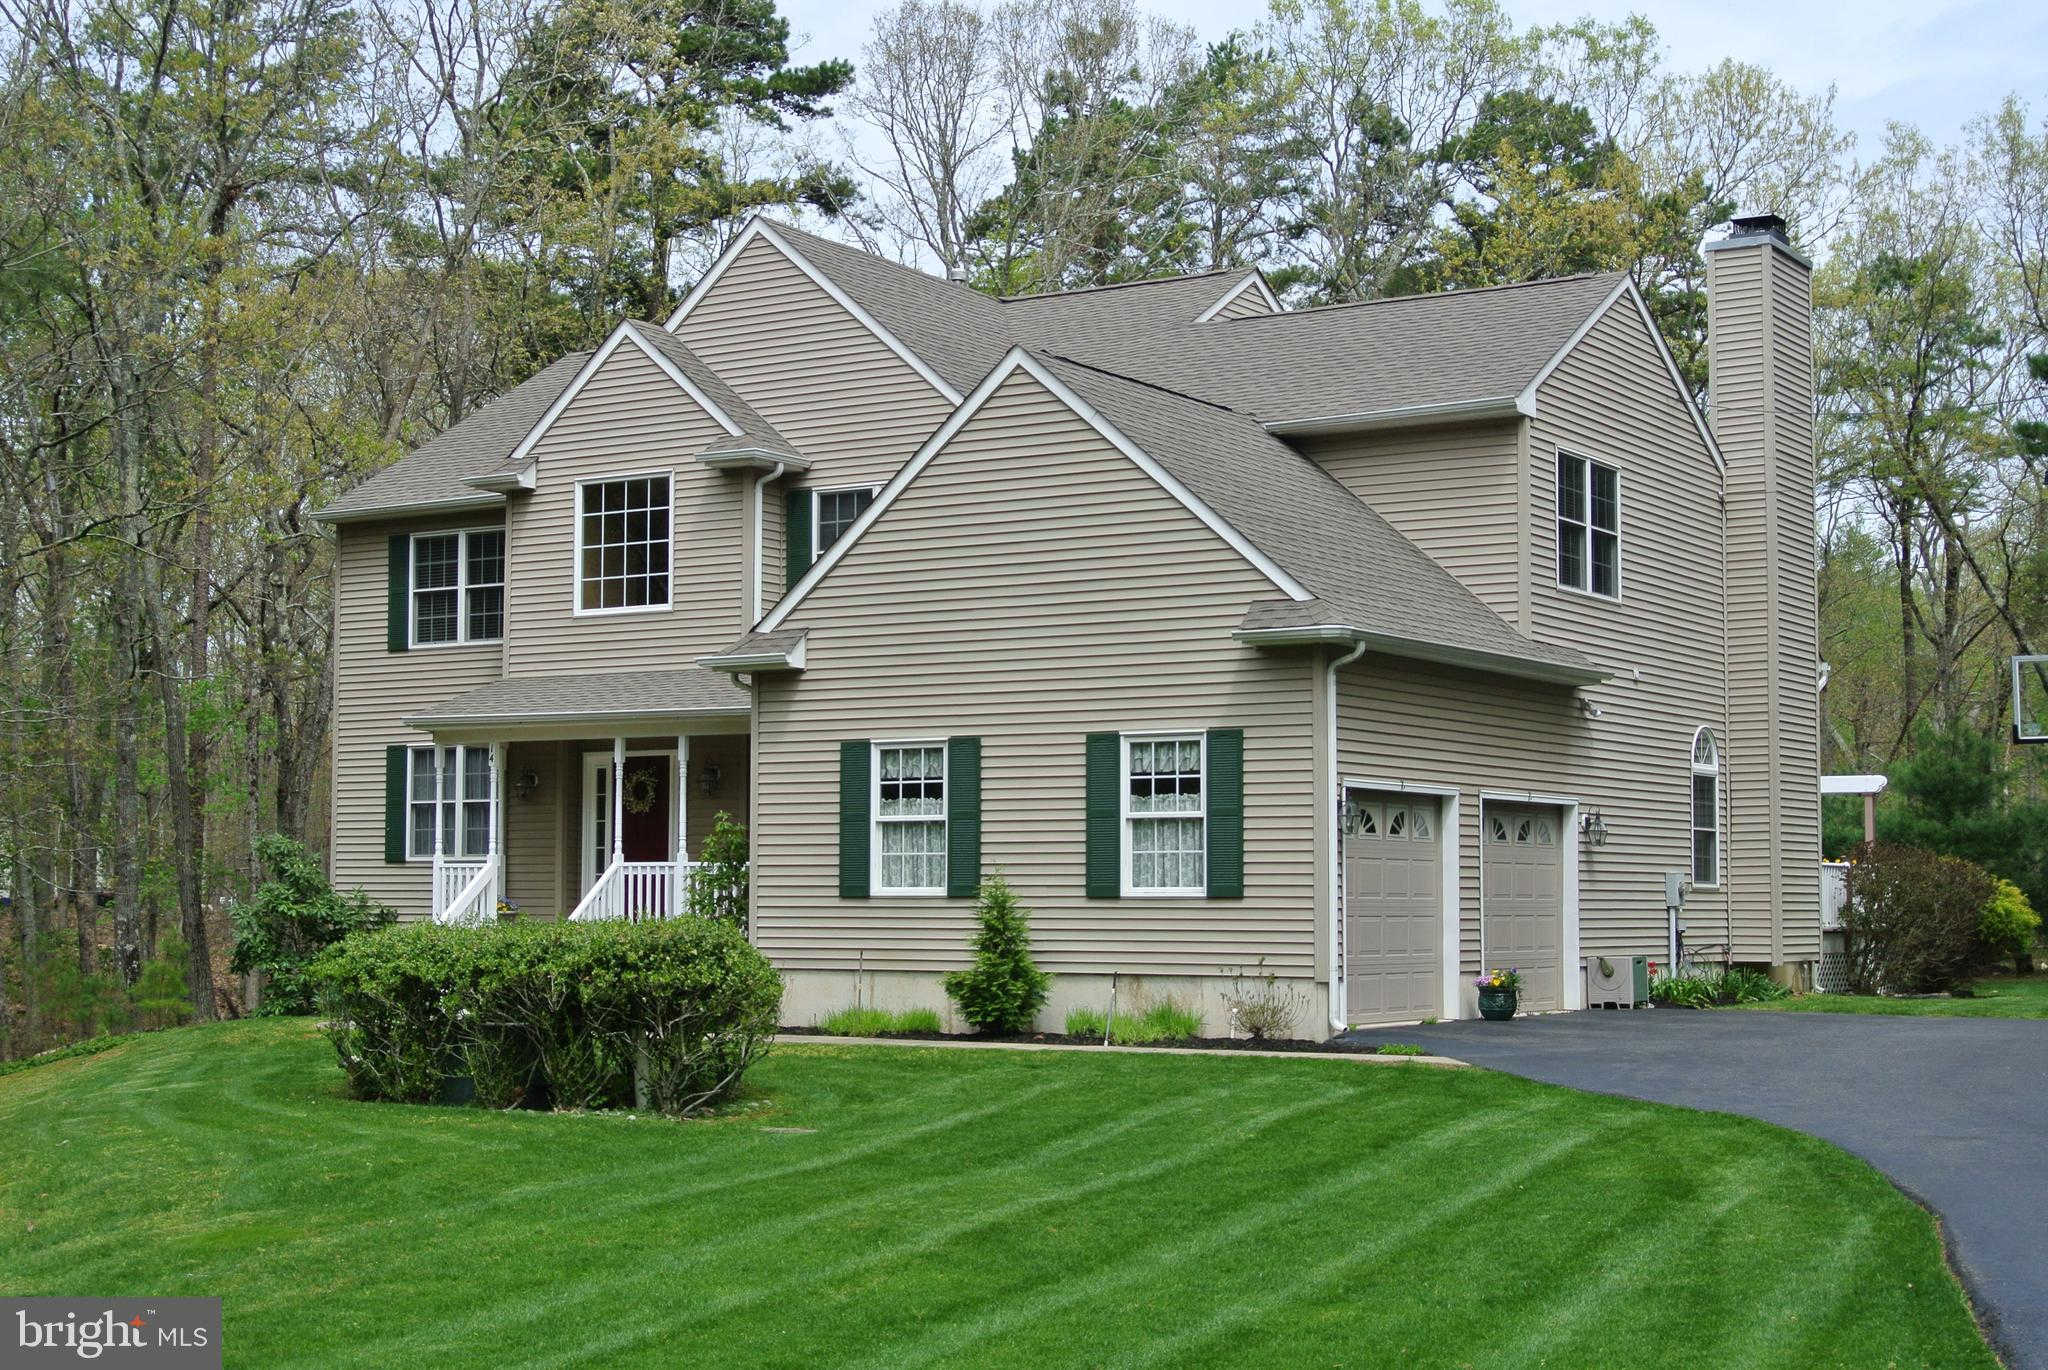 14 Nyoda Trail, Tabernacle, NJ 08088 now has a new price of $434,900!